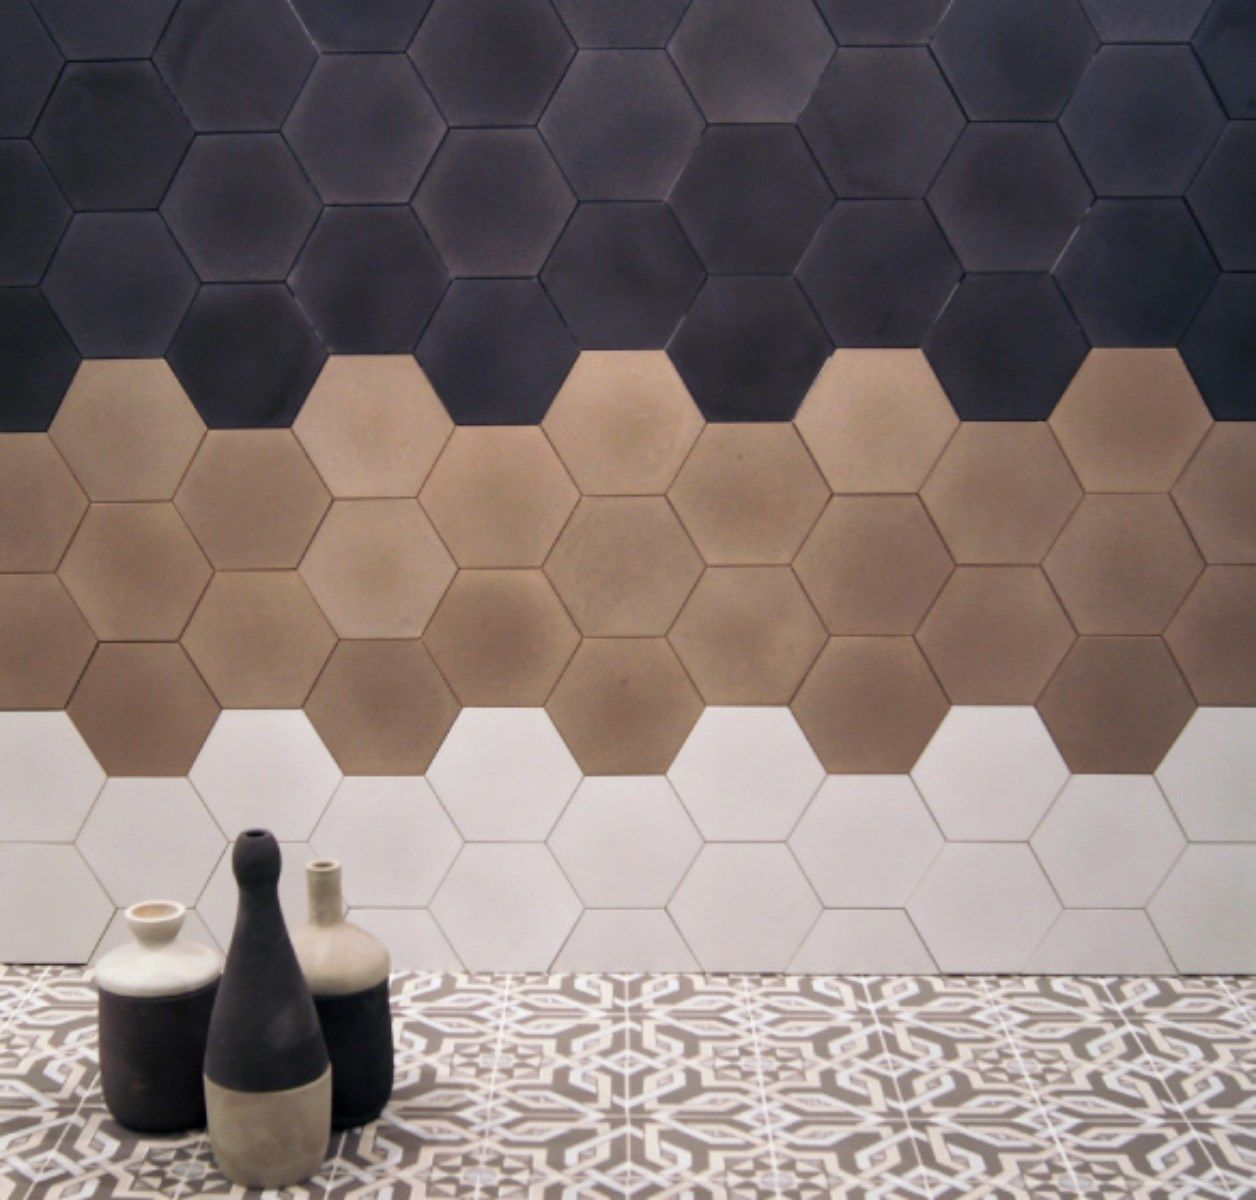 Carreaux De Ciment Hexagonal Carreaux De Ciment Sols En 2019